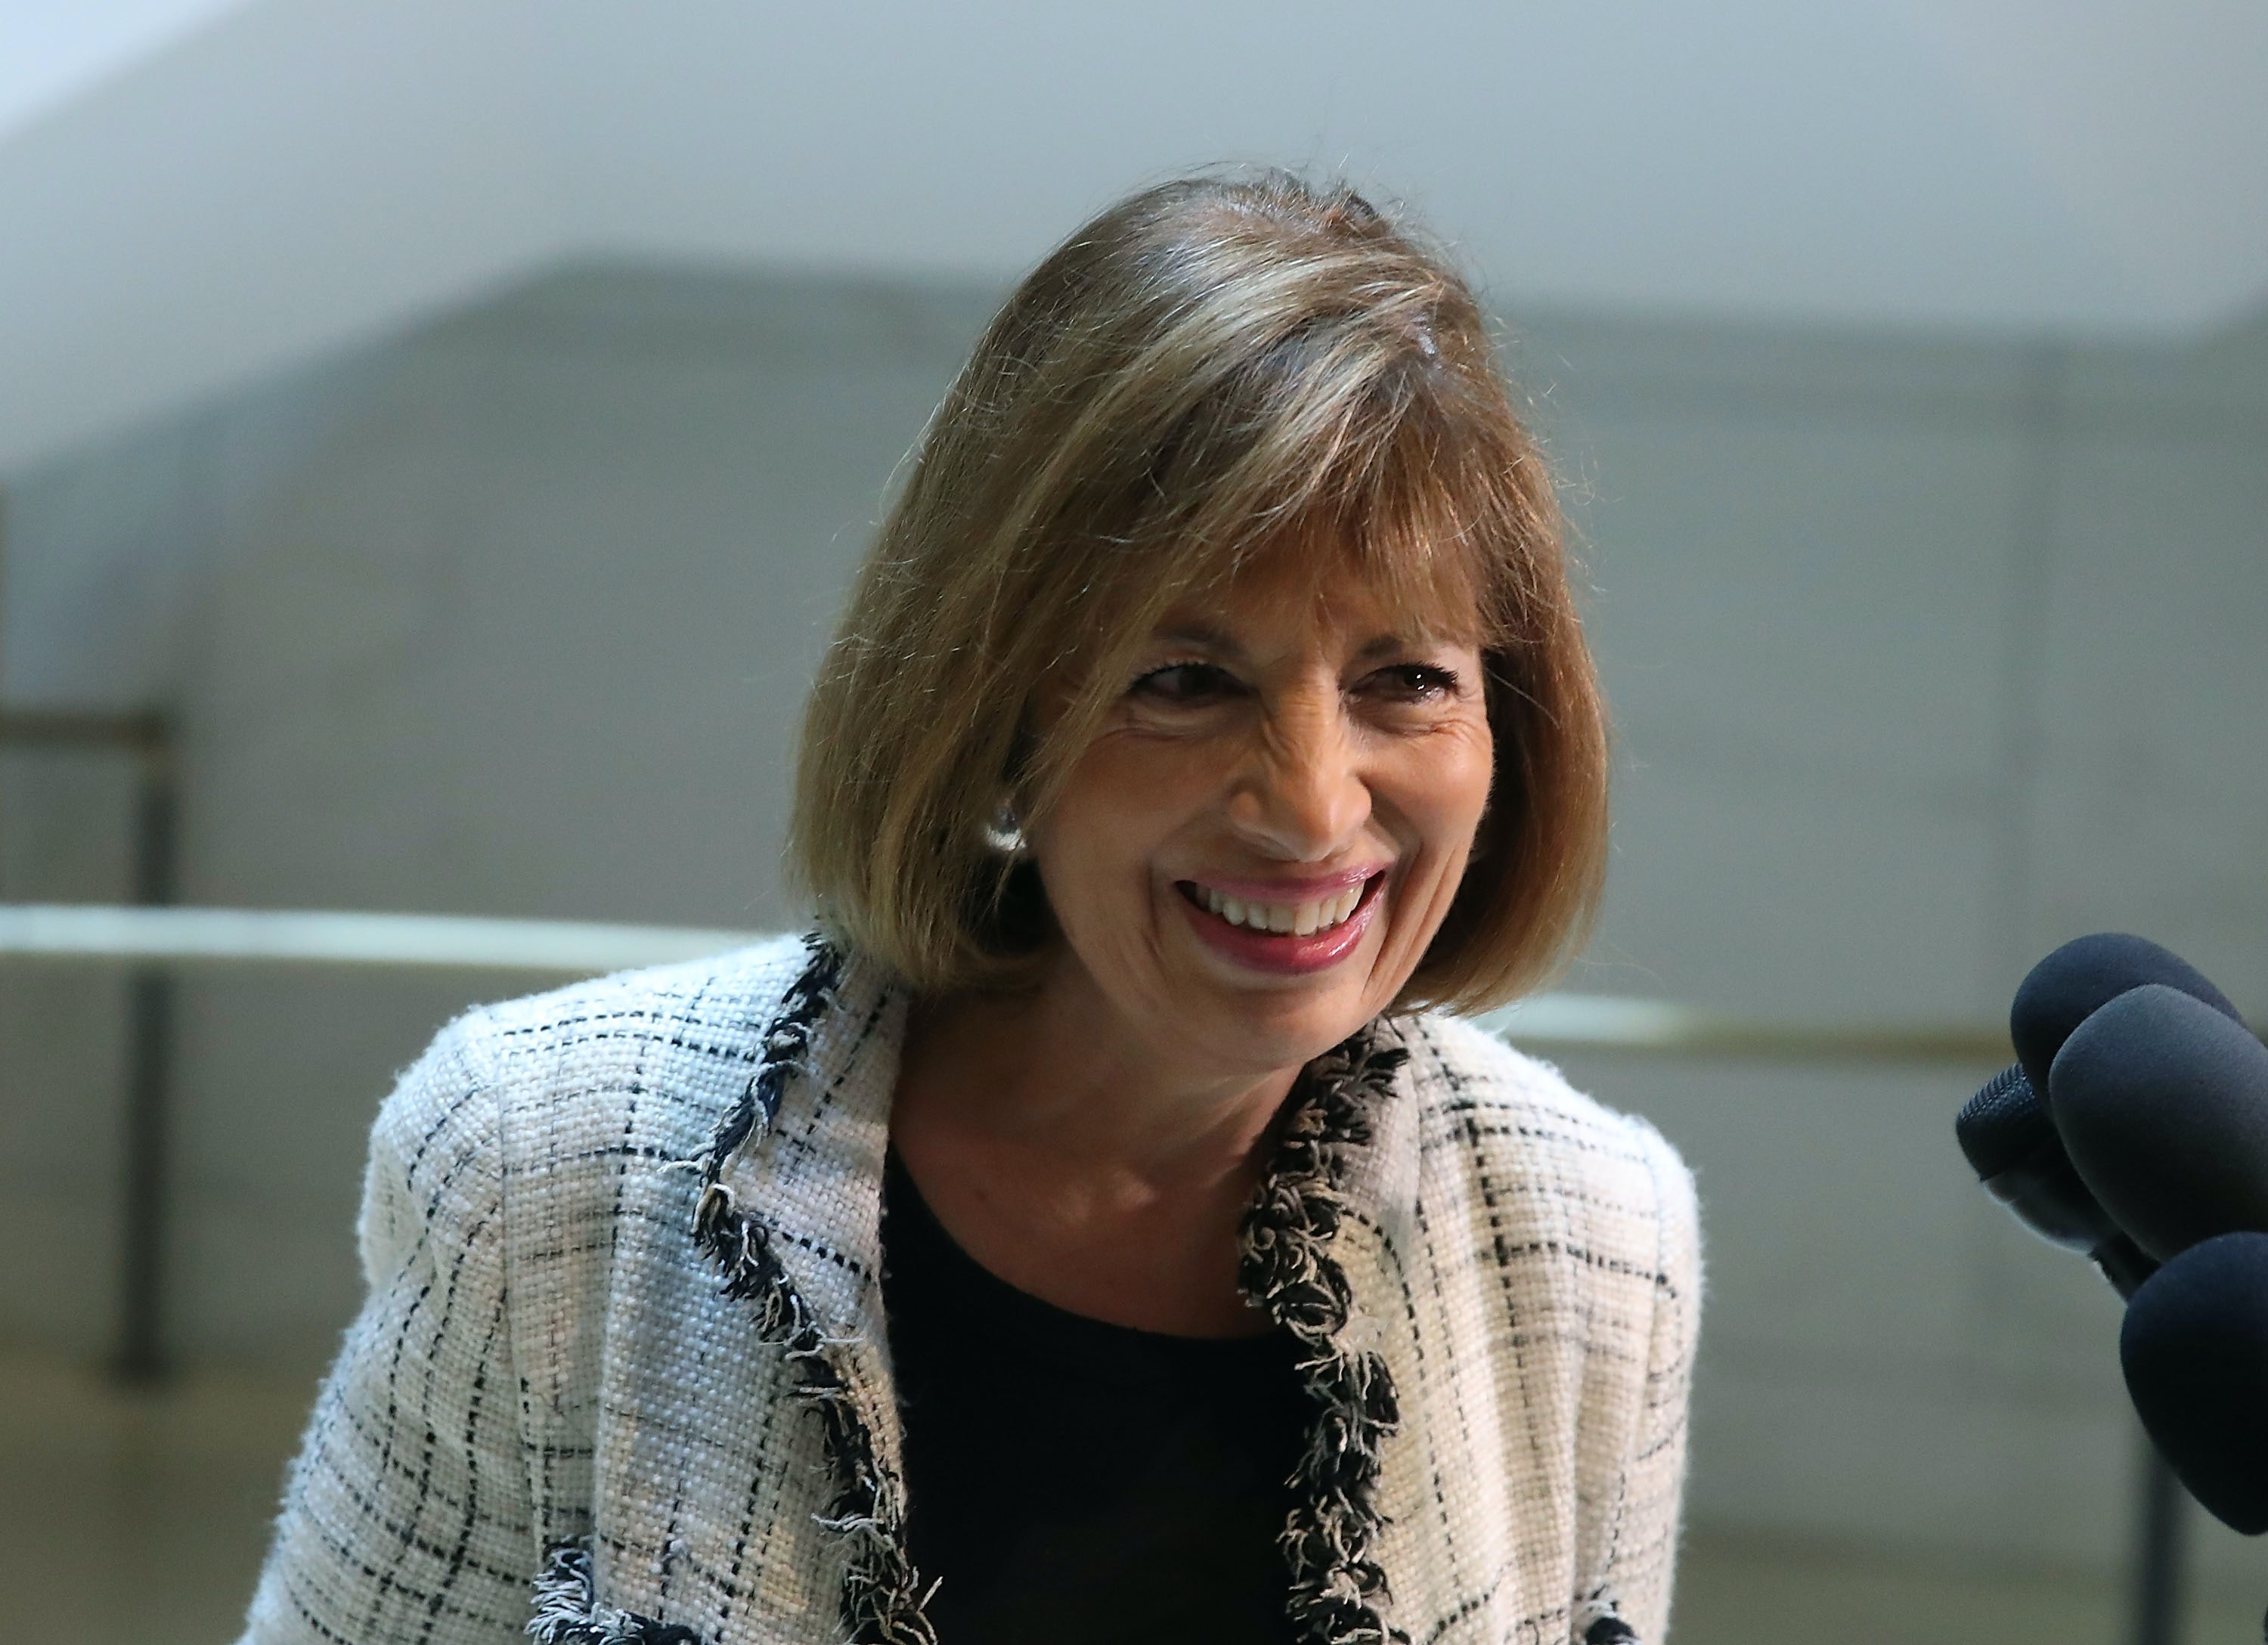 Speier: 'Time To Throw Back The Curtain' On Congressional Sexual Harassment